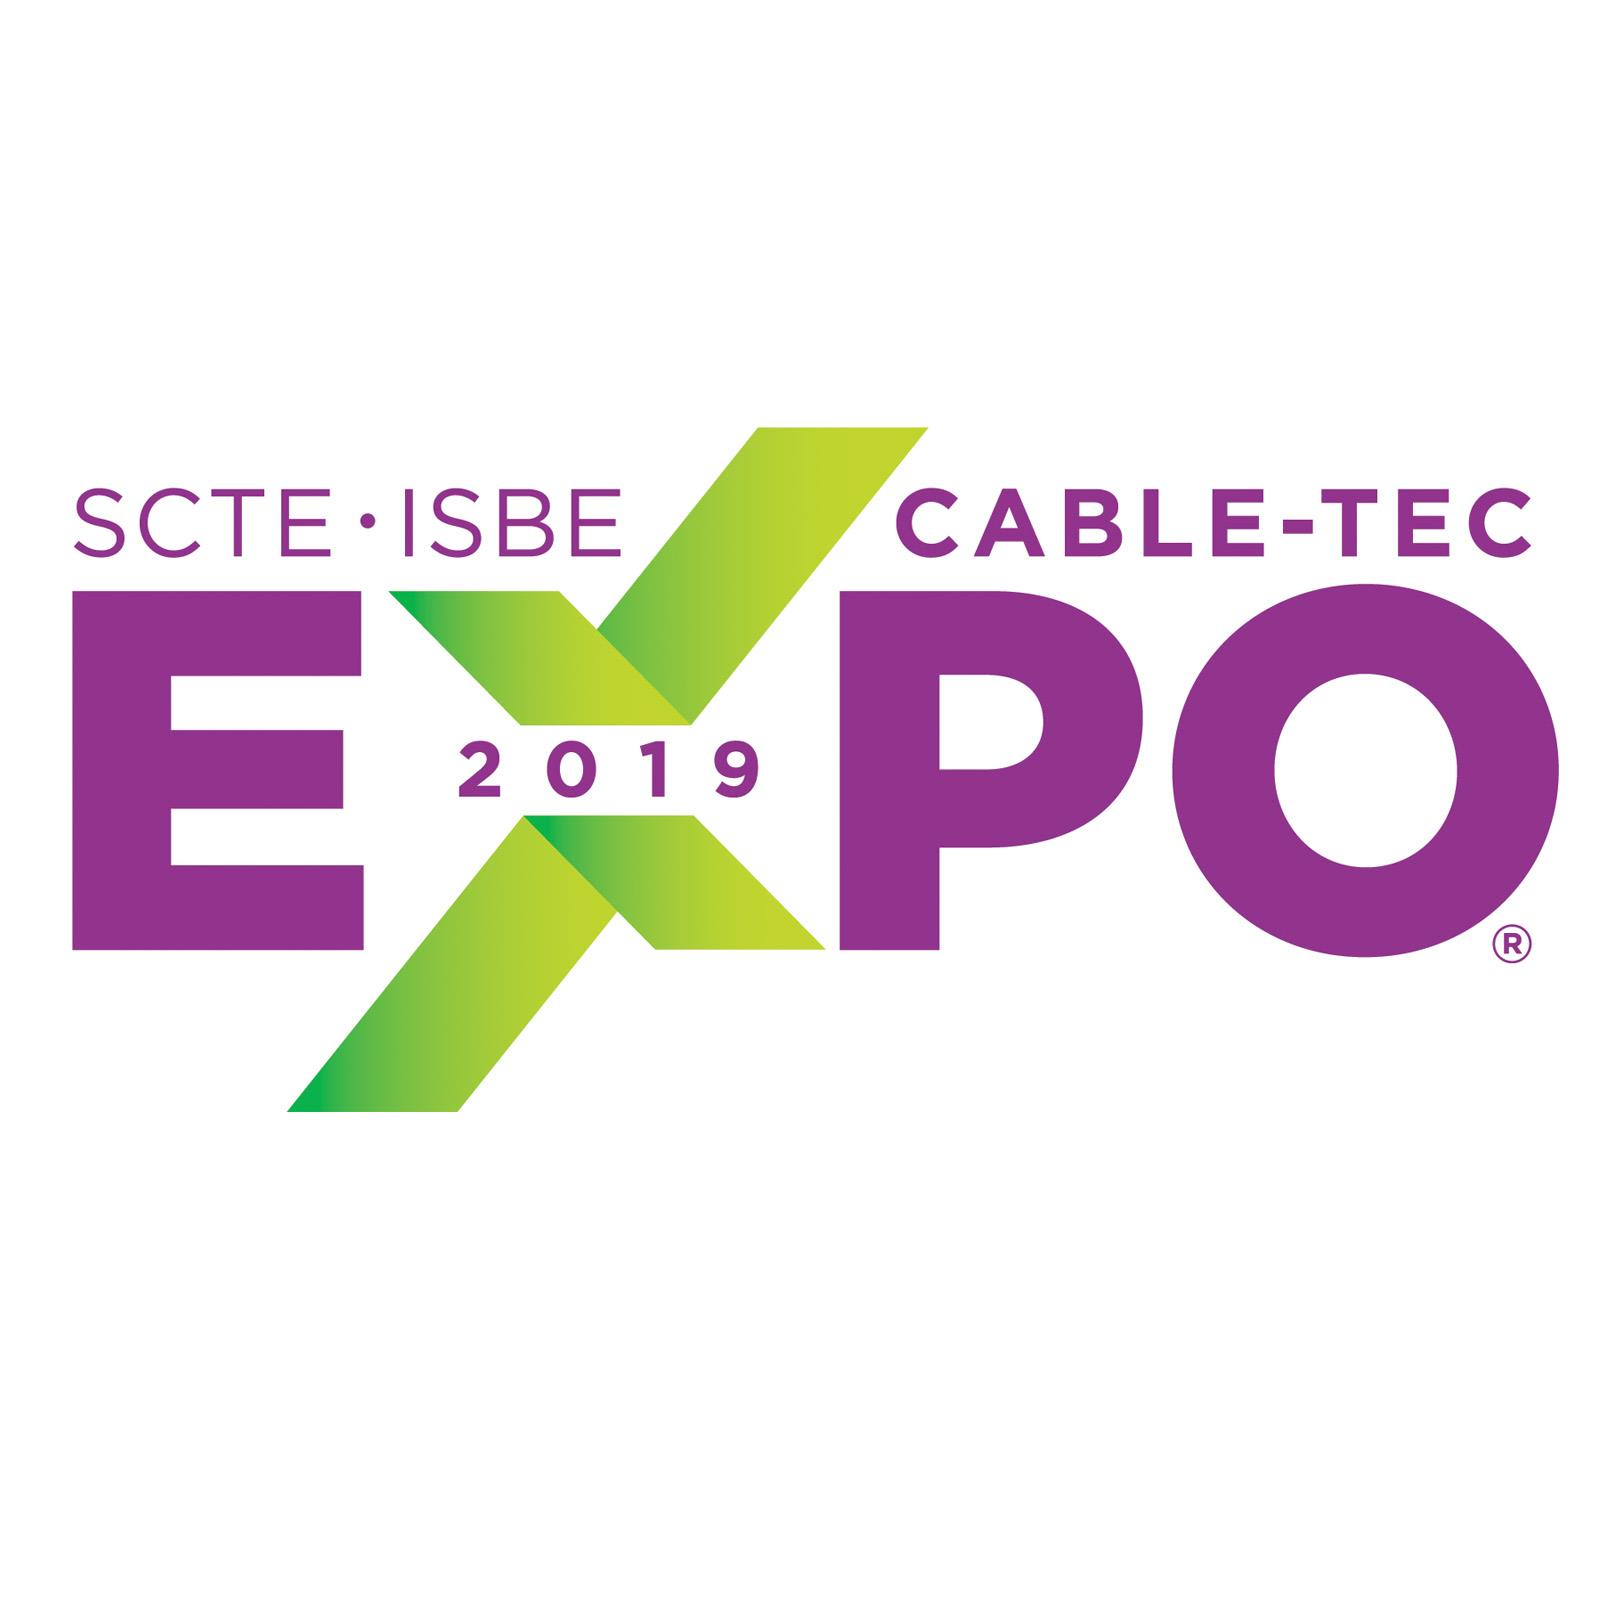 Cable-Tec Expo 2019